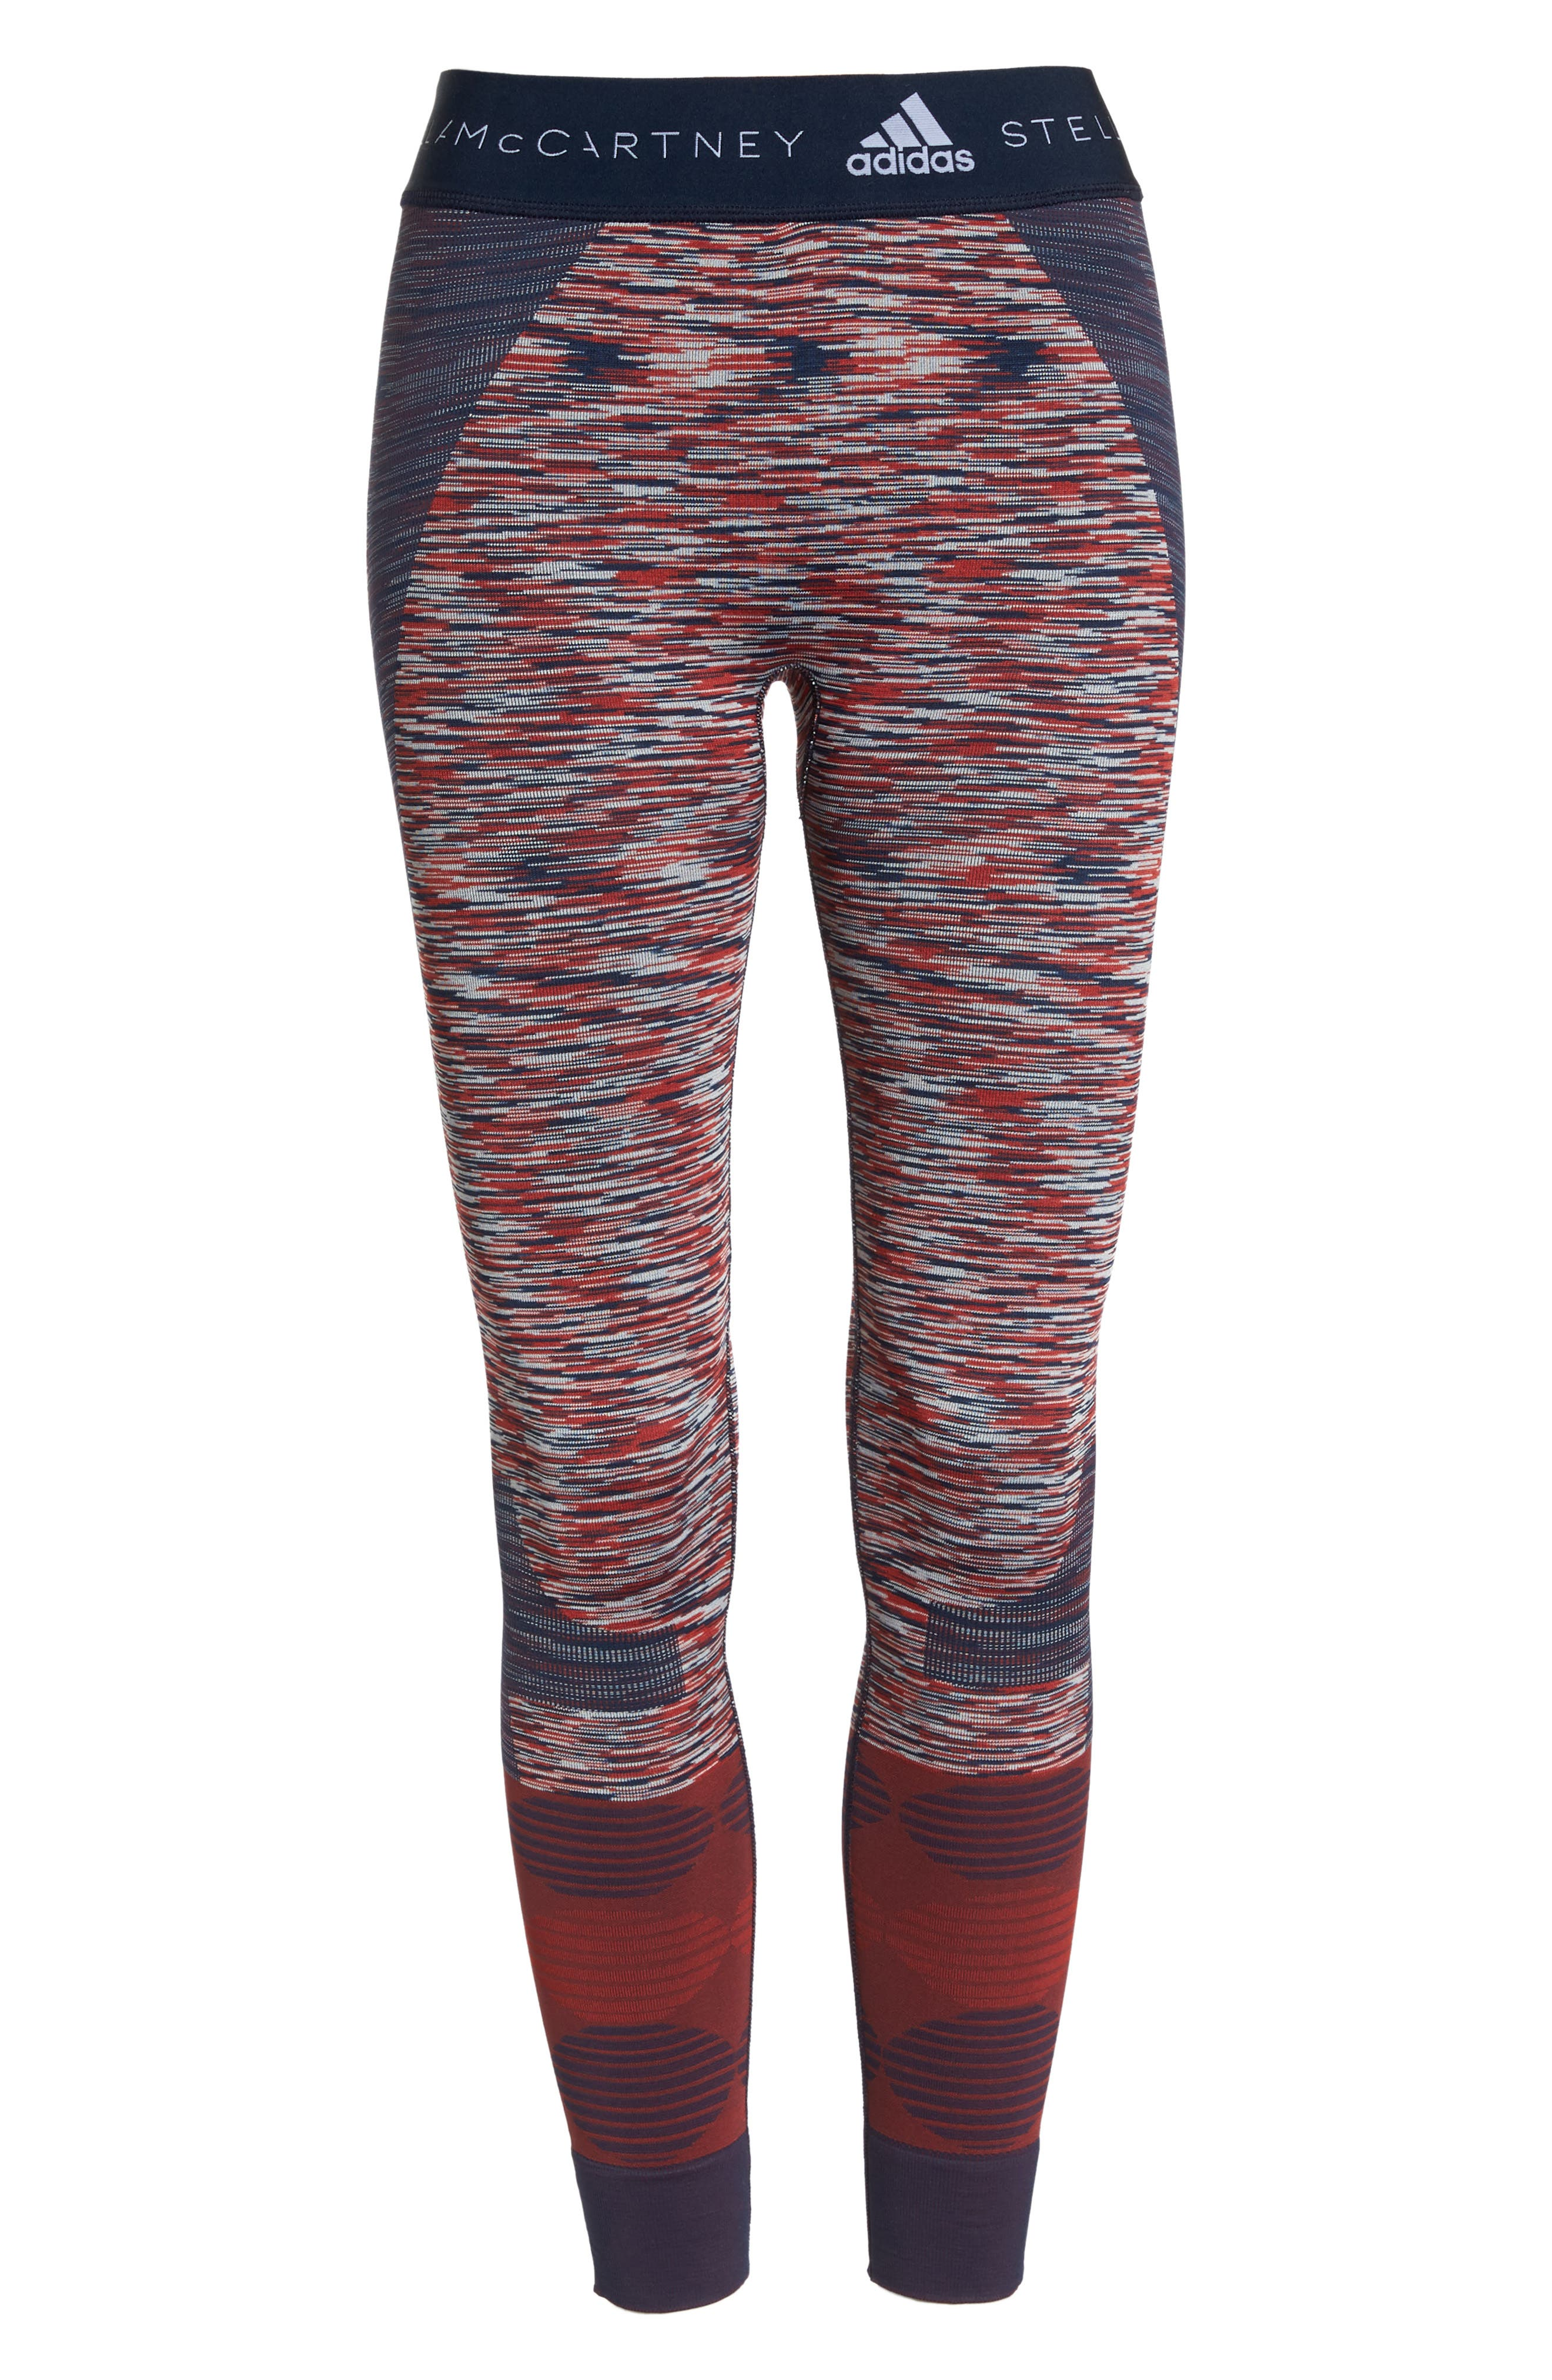 Yoga Seamless Space Dye Leggings,                             Alternate thumbnail 7, color,                             415